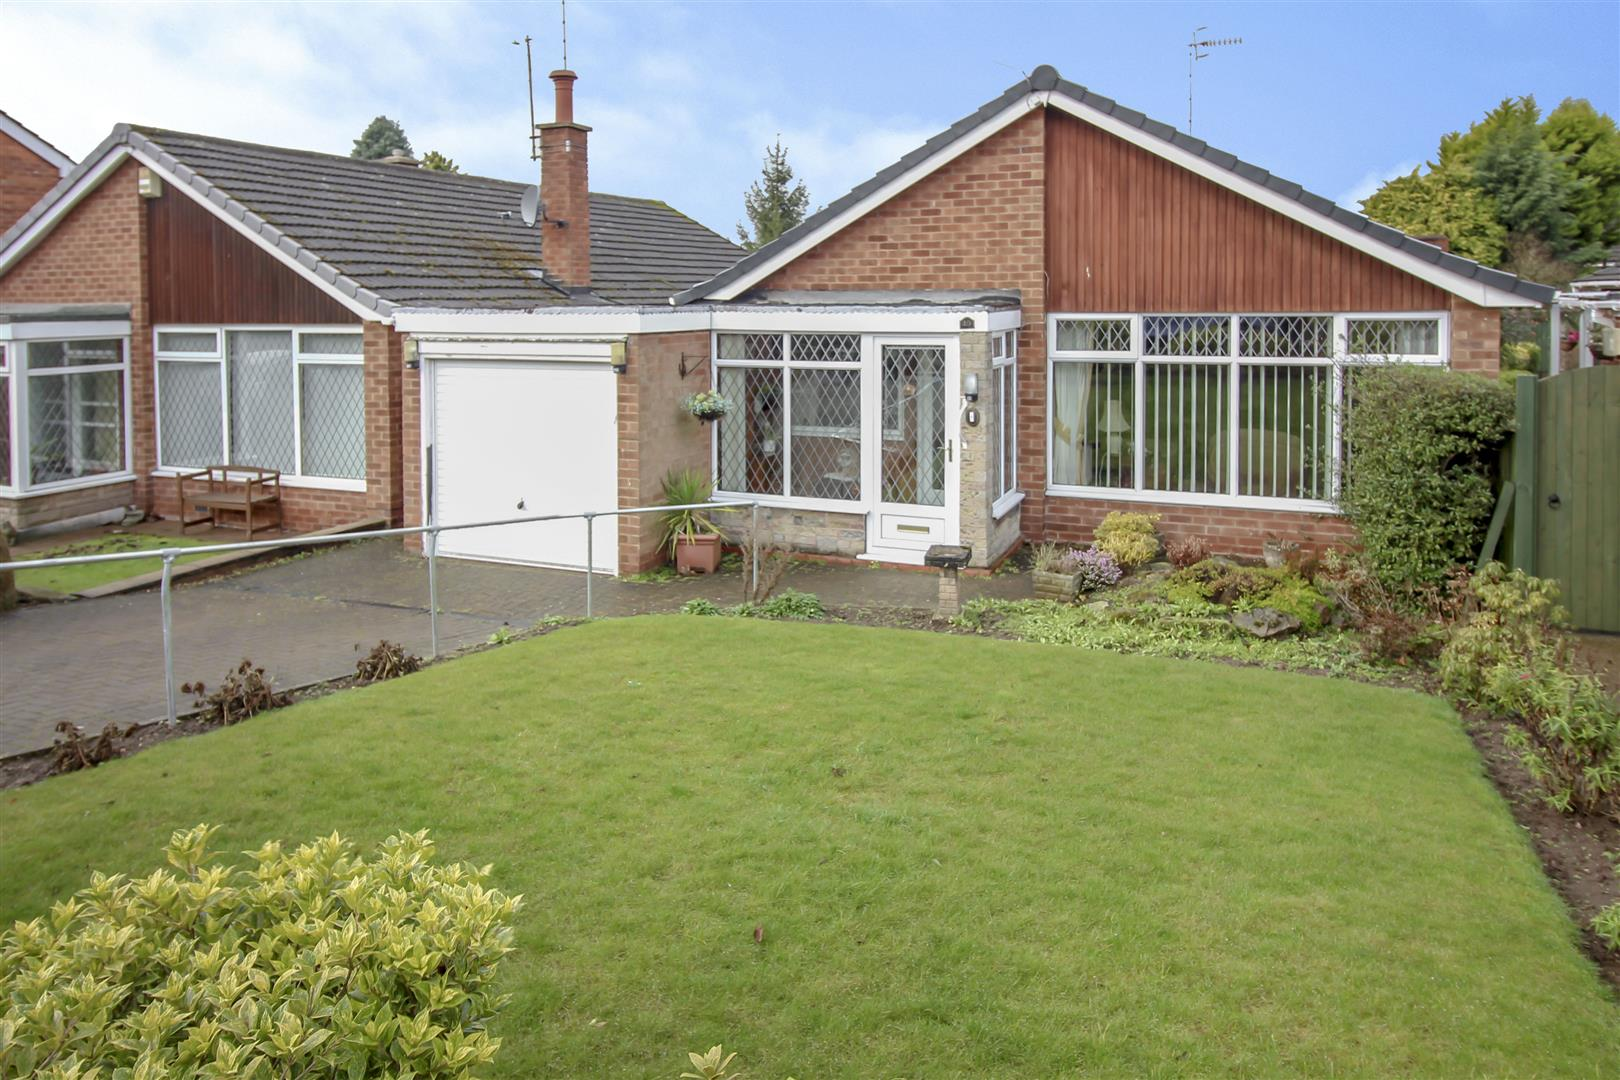 2 Bedrooms Detached Bungalow for sale in Russley Road, Bramcote, Nottingham